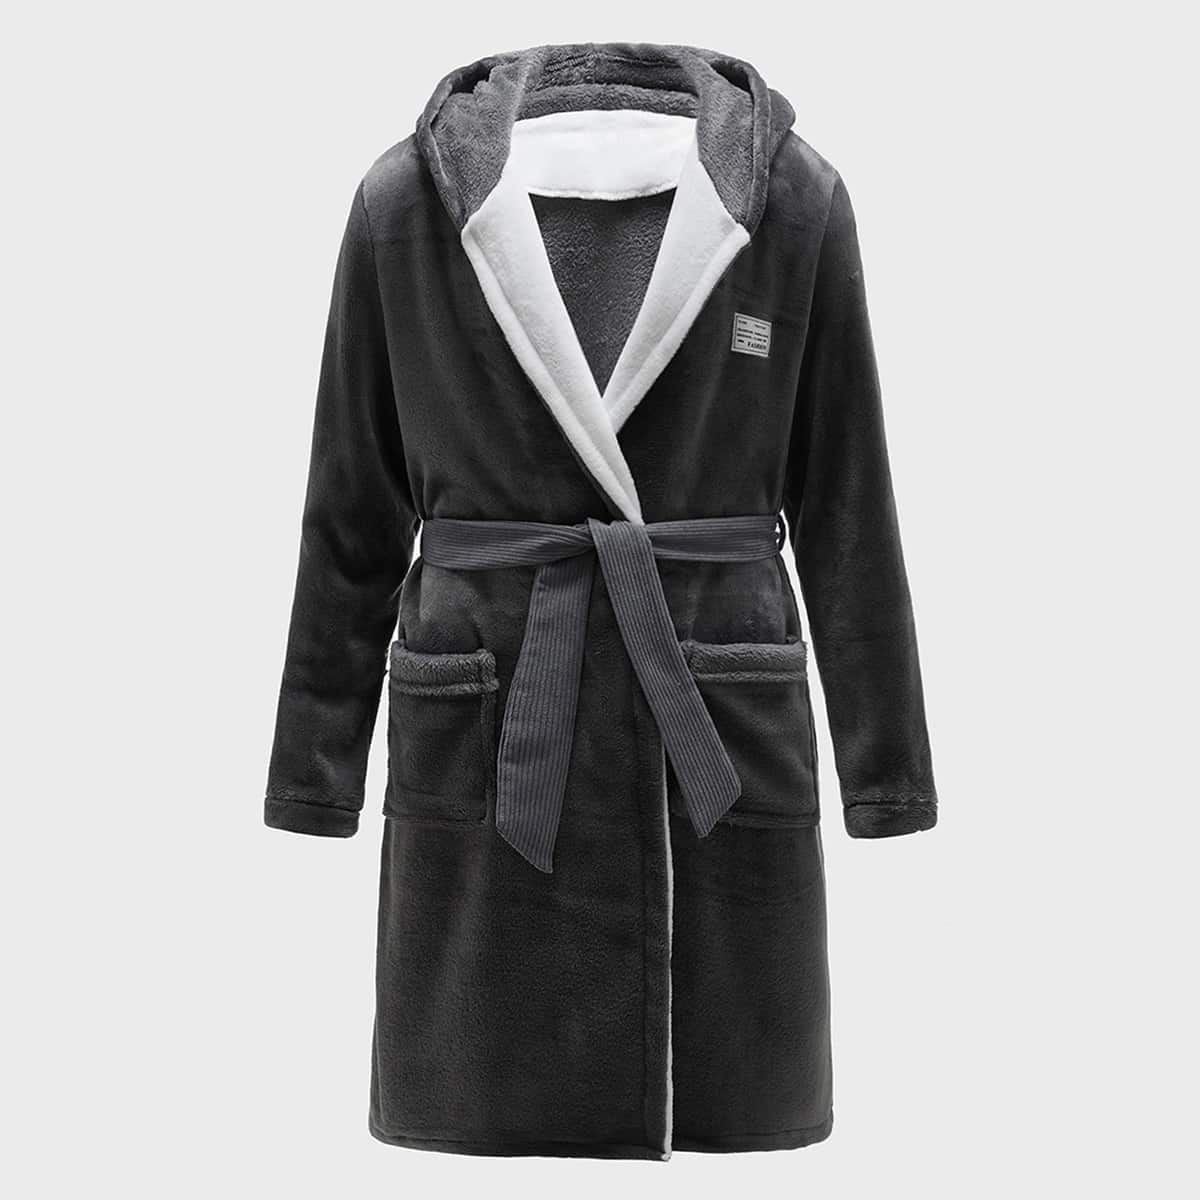 Men Letter Patched Flannel Belted Hooded Robe, SHEIN  - buy with discount